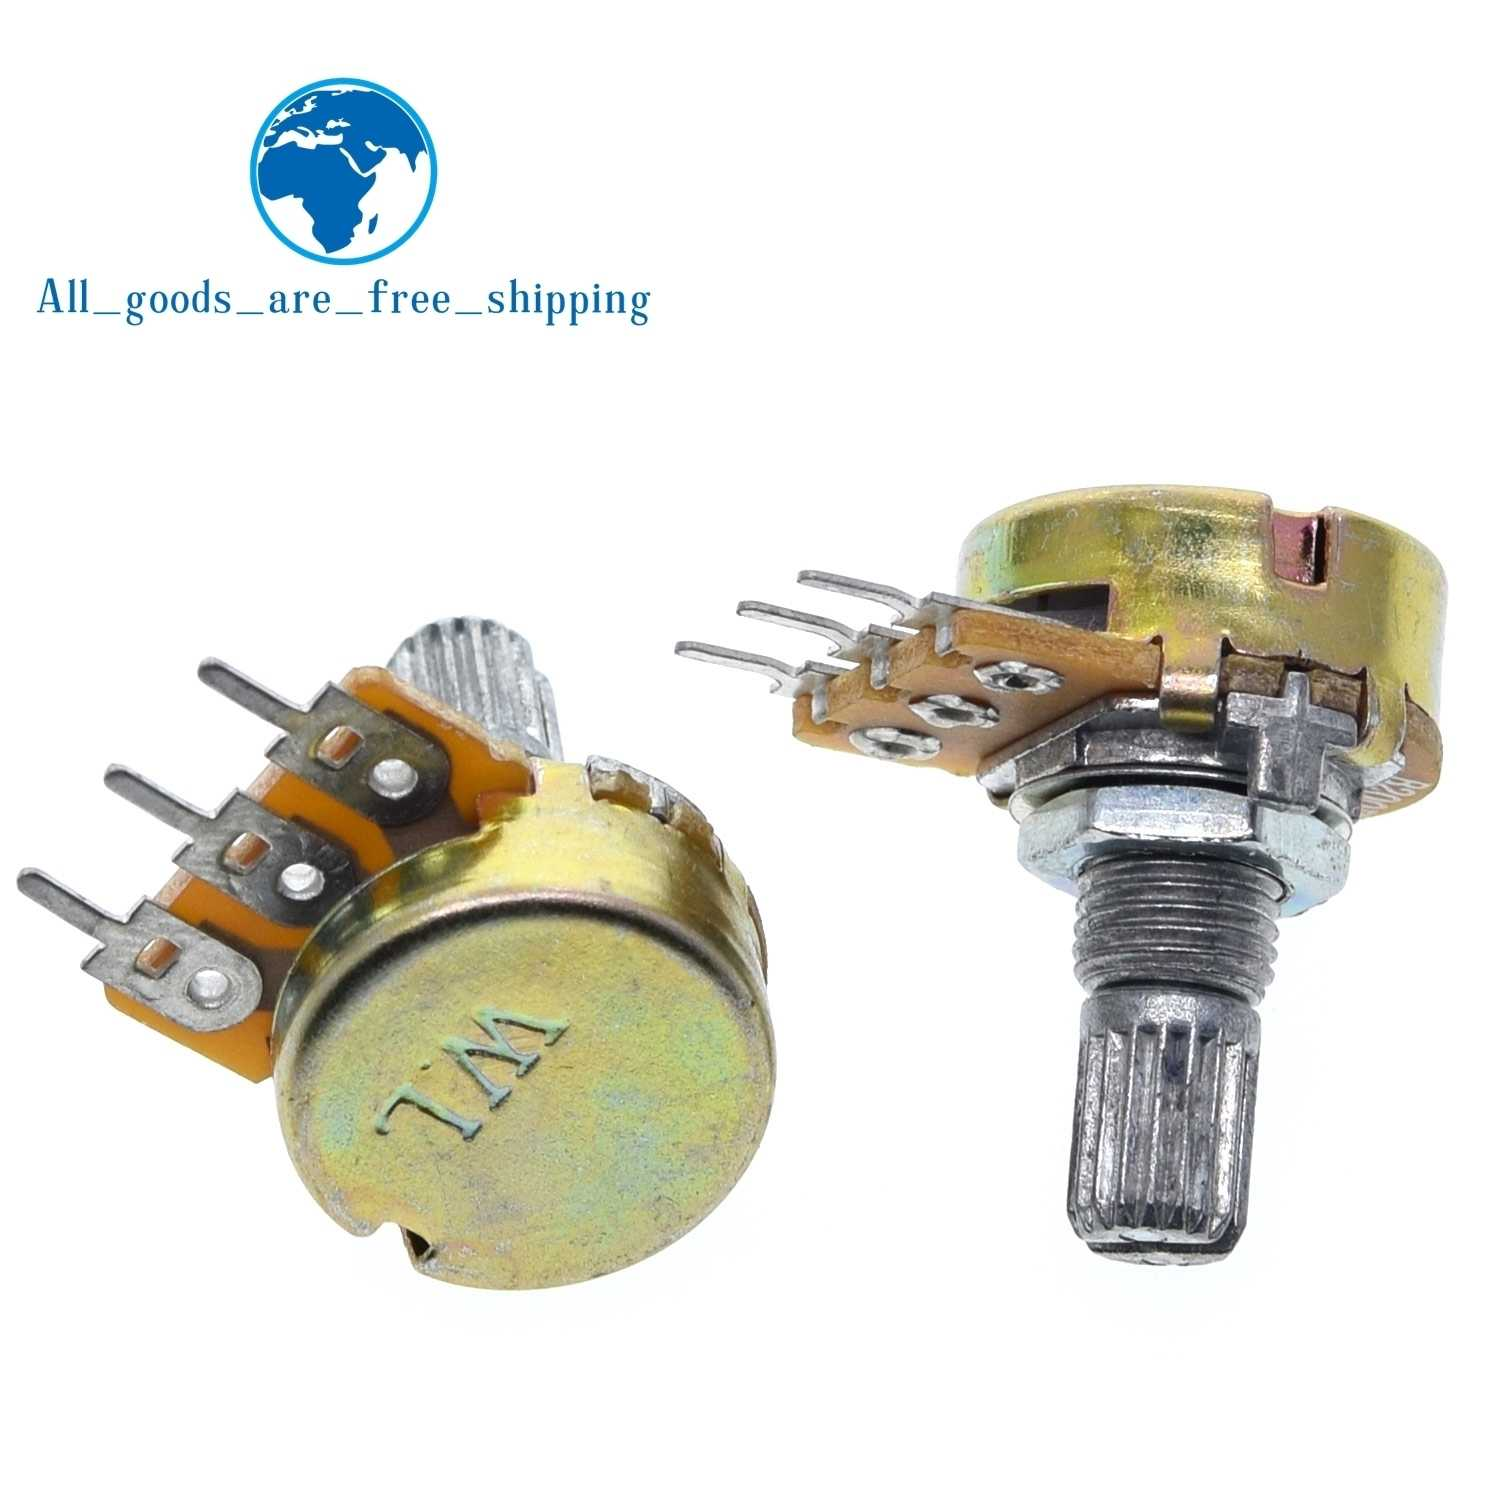 50PCS WH148 B20K Linear Potentiometer 15mm Shaft With Nuts And Washers